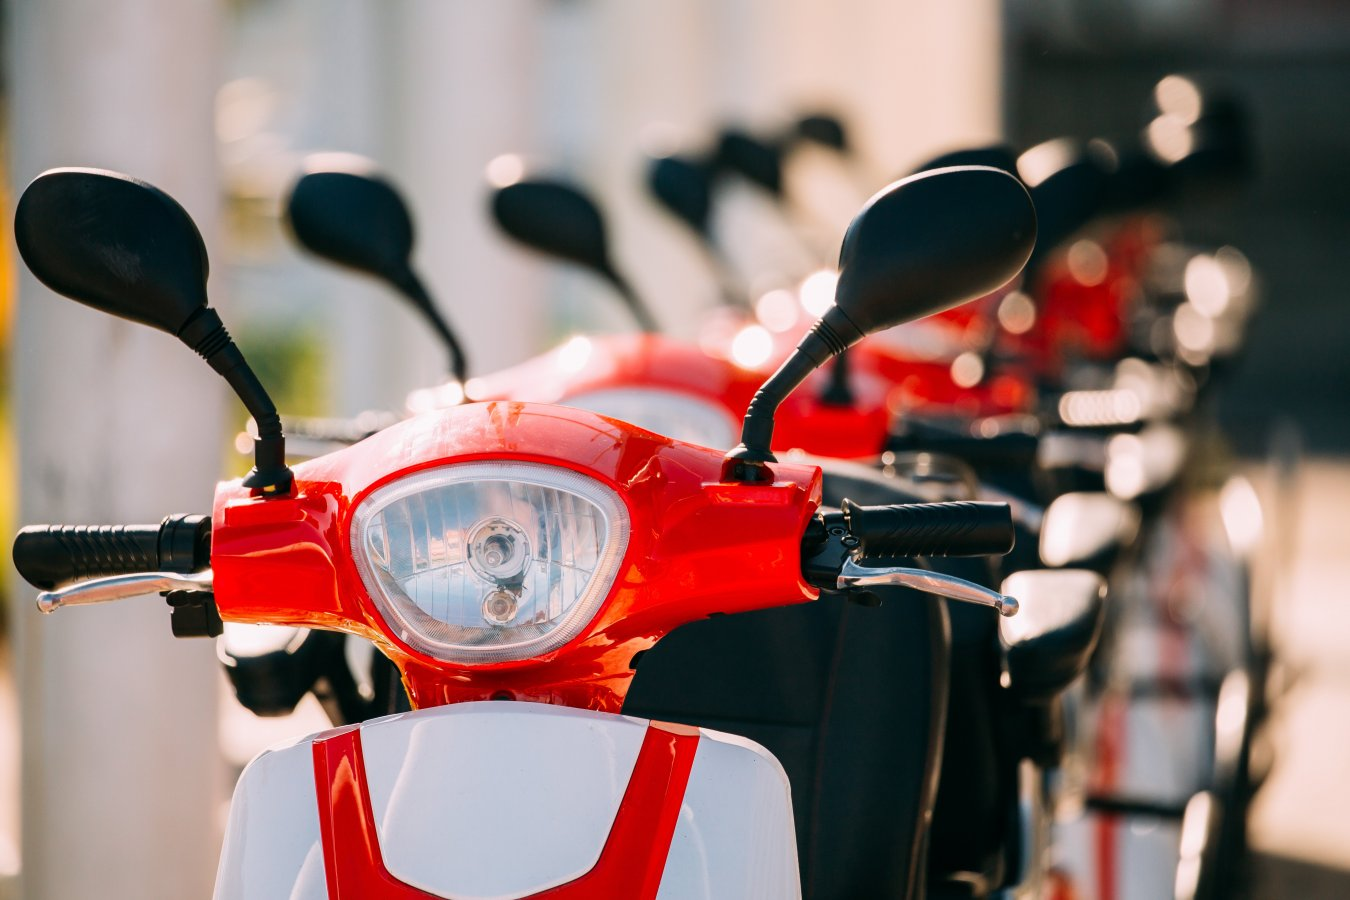 Electric scooters: Everything You Need to Know about the Battery